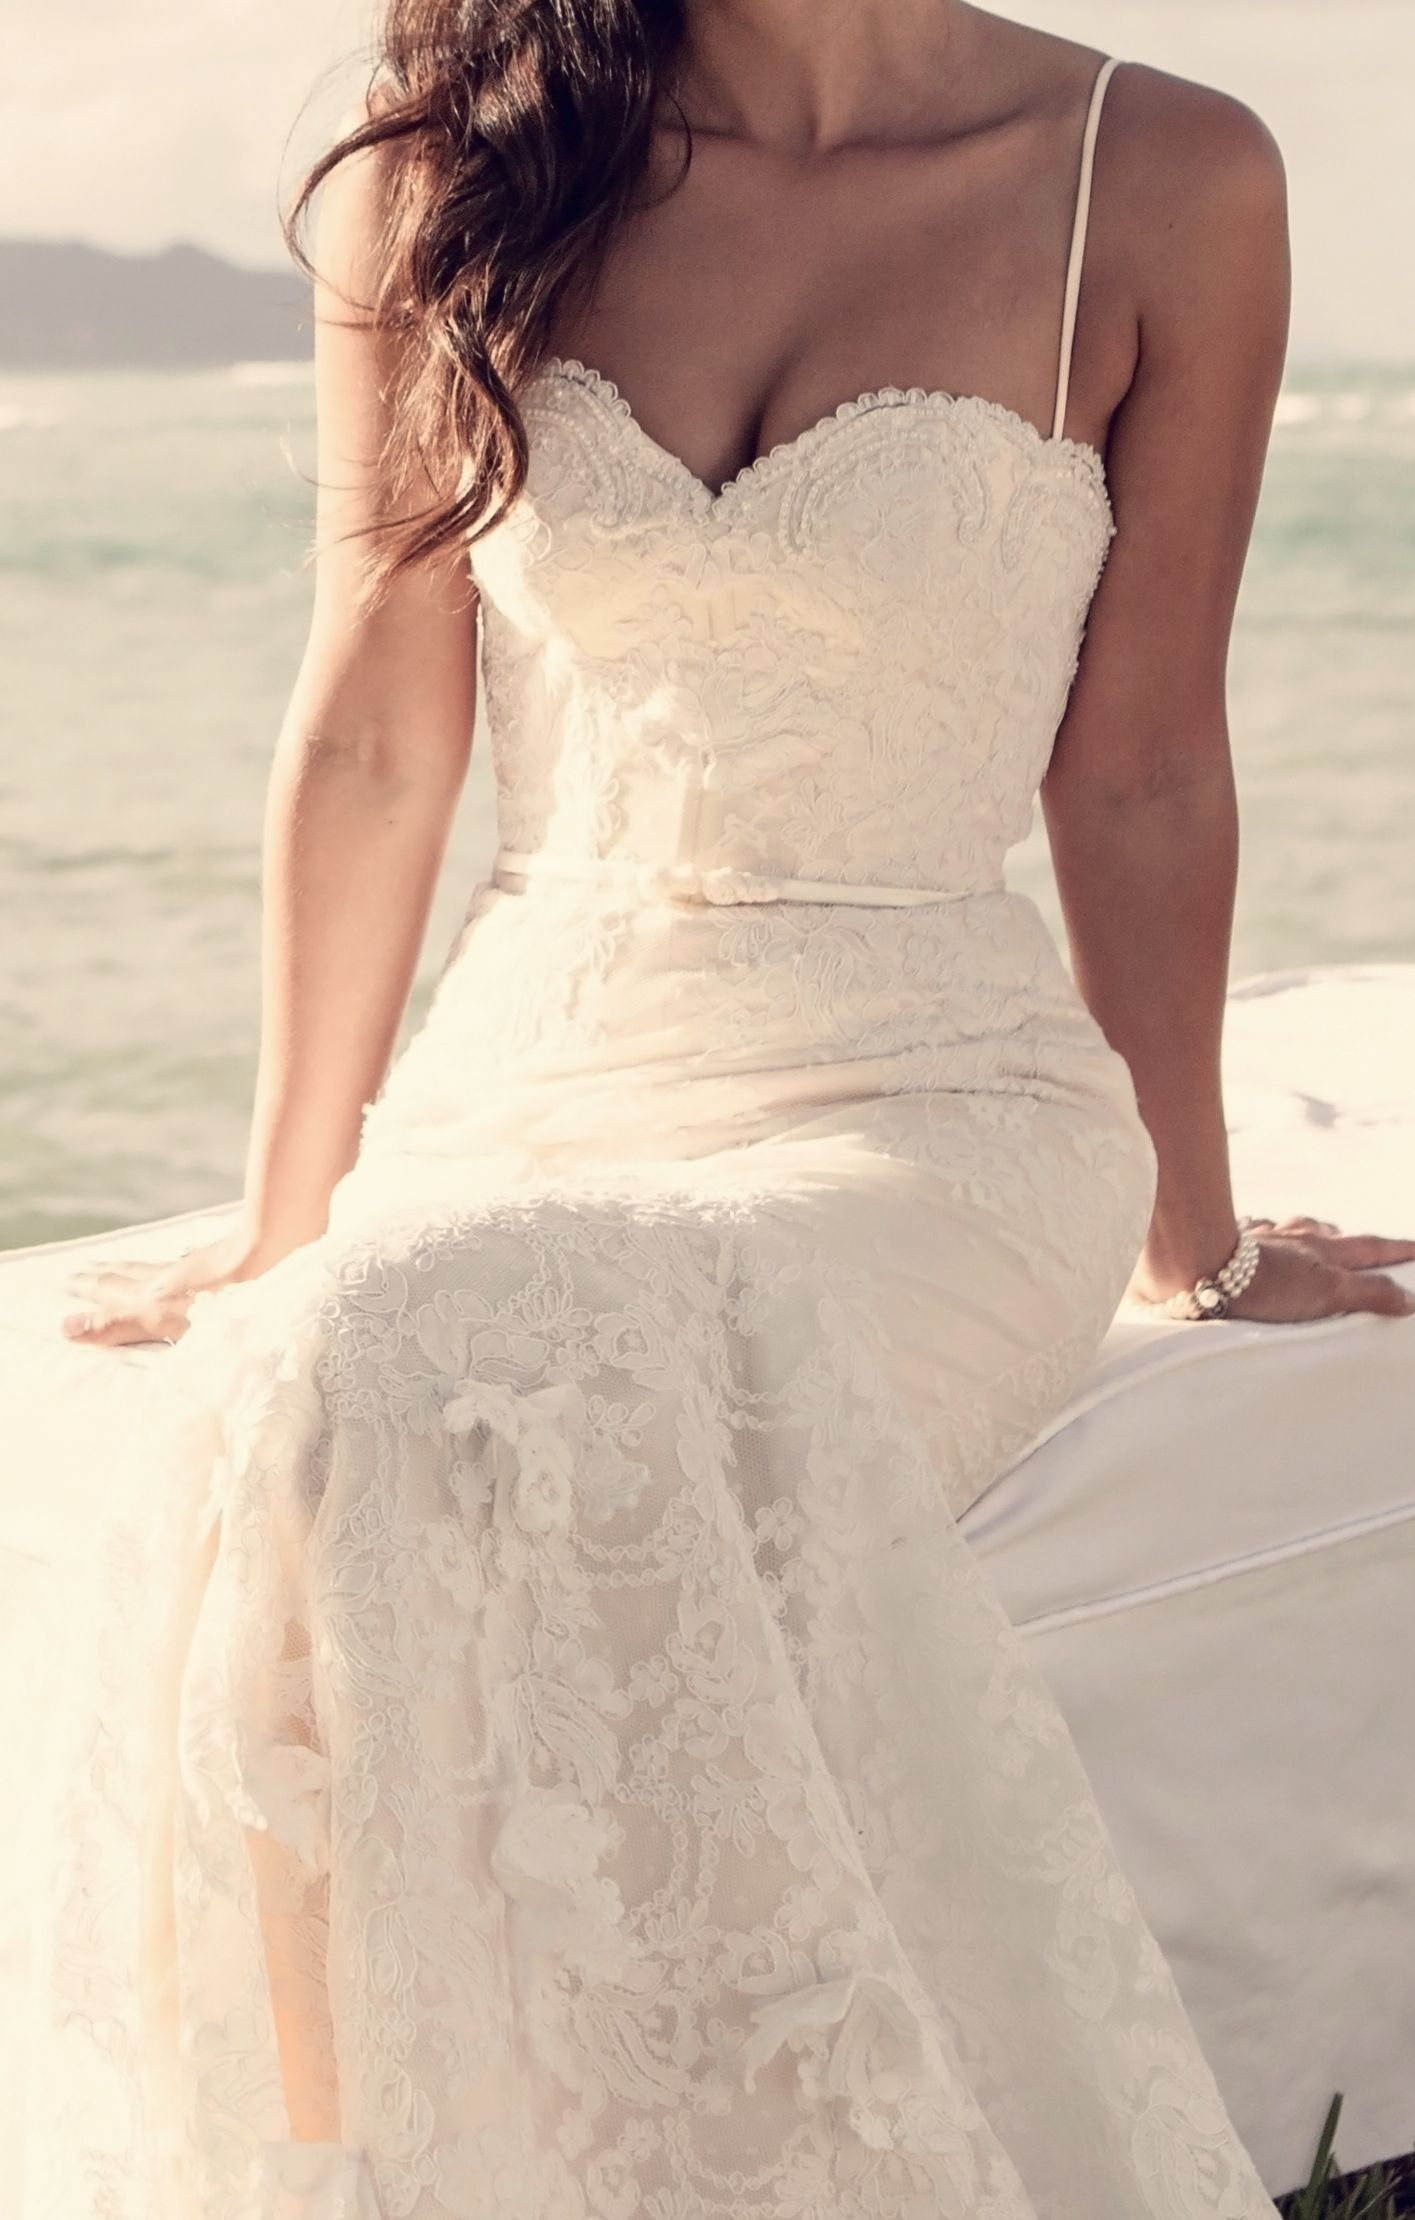 Details about Beach Wedding Dresses Vintage Mermaid Spaghetti Sexy ...